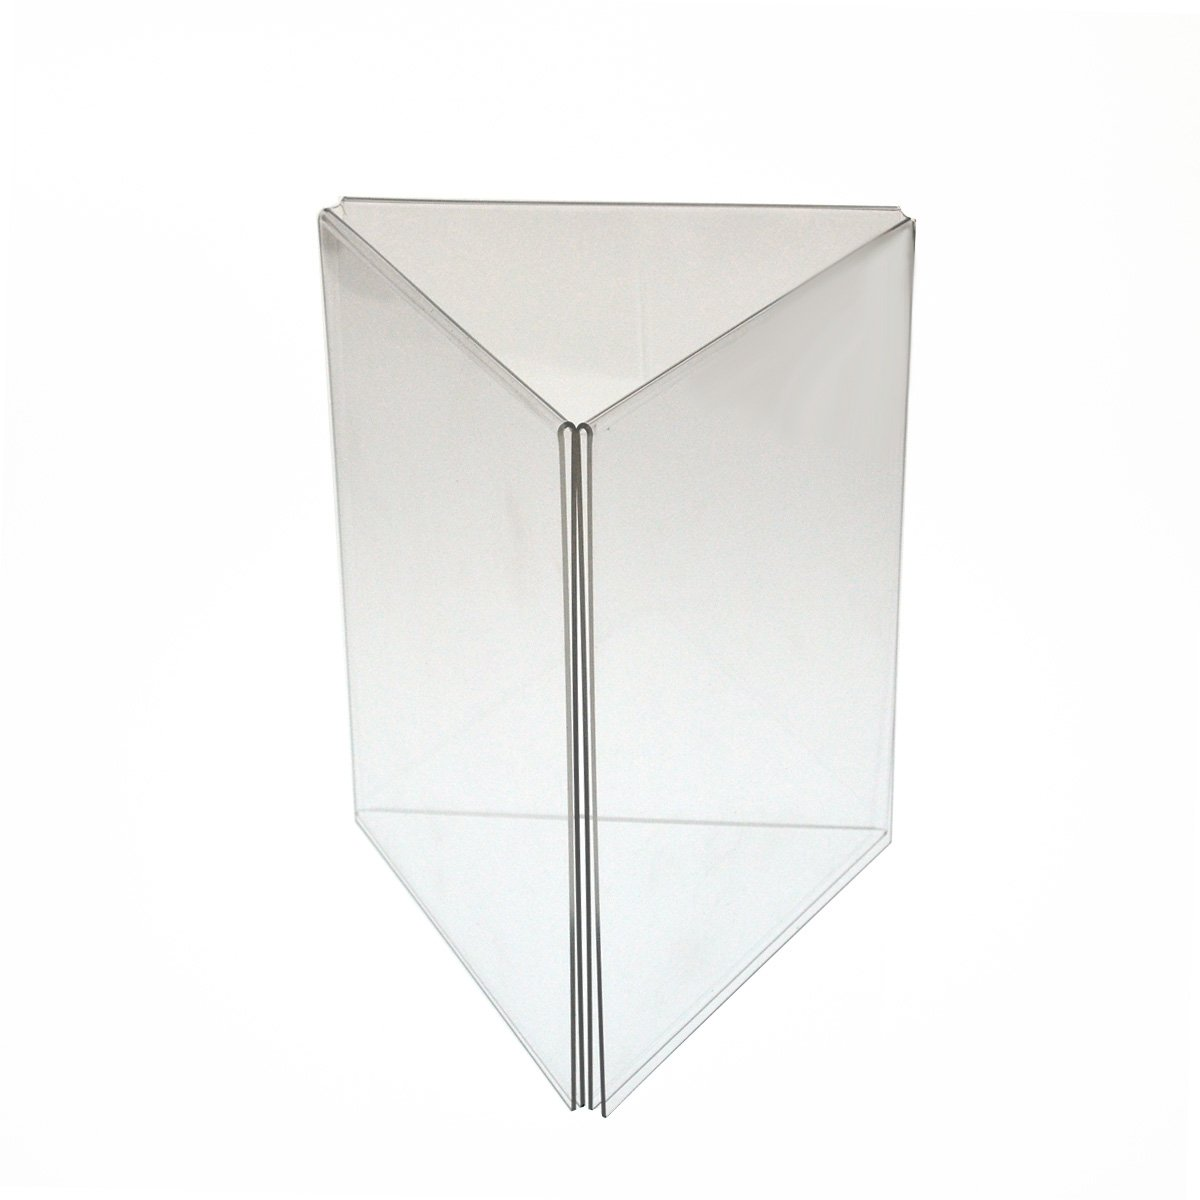 Amazon.com Marketing Holders 5 x 7 inch Three Sided Acrylic Table Tent Sign Holder Lot of 10 Kitchen u0026 Dining  sc 1 st  Amazon.com & Amazon.com: Marketing Holders 5 x 7 inch Three Sided Acrylic Table ...